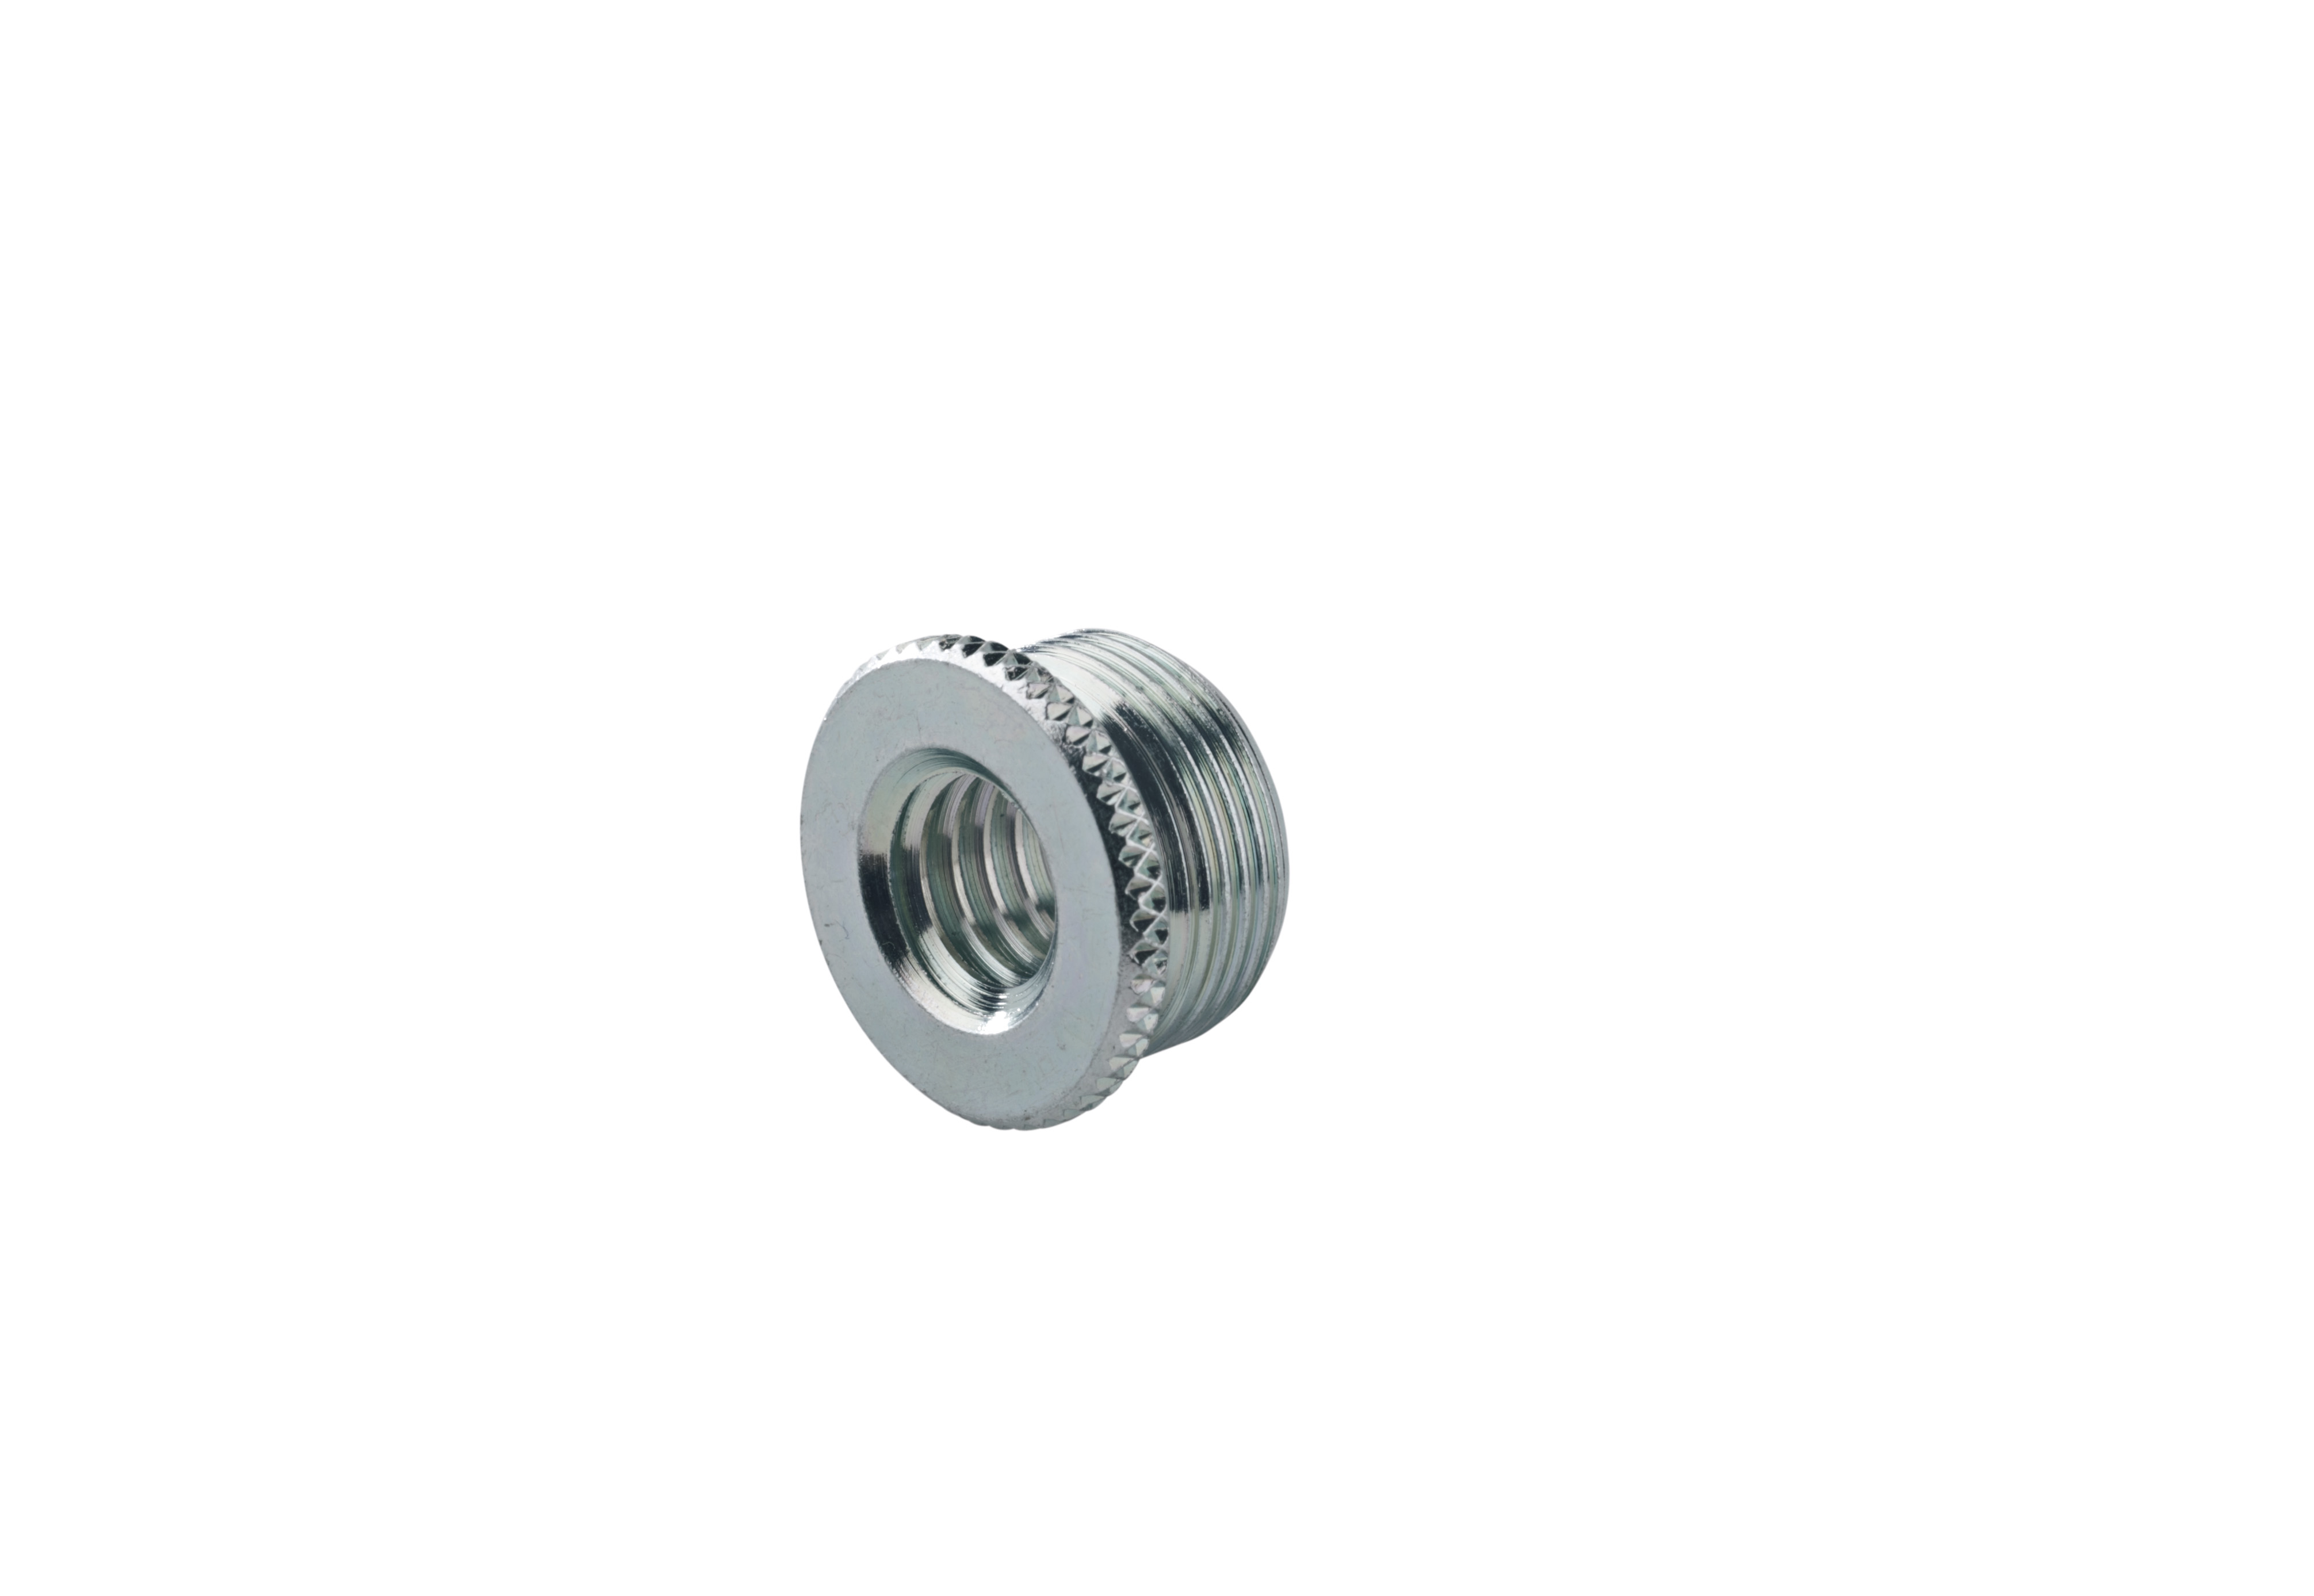 K&M Thread Adapter Zinc Plated 3/8 inch